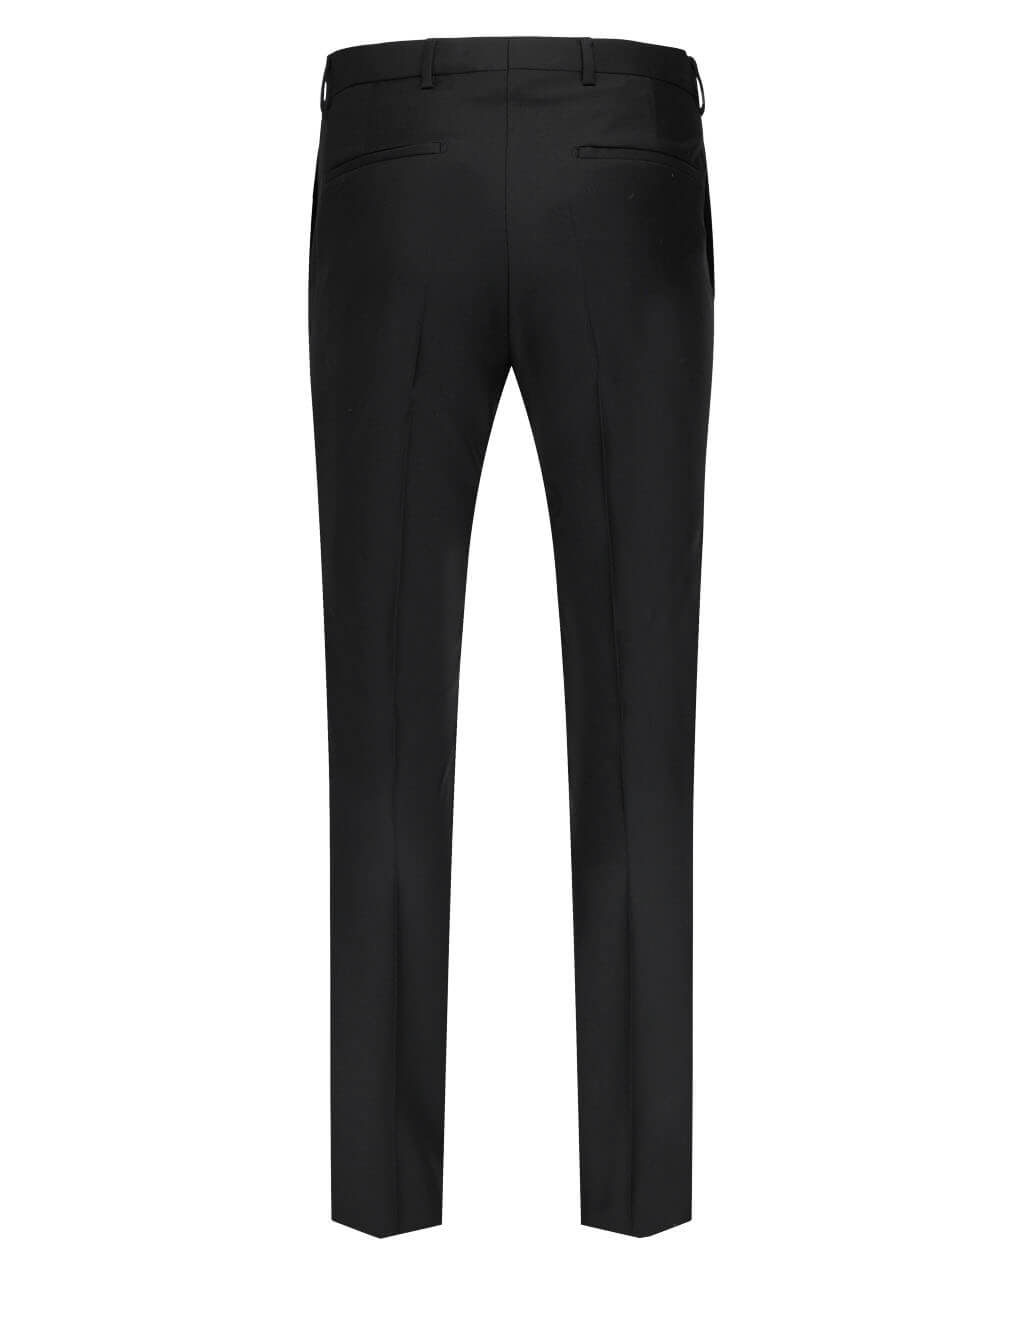 Men's Givenchy Contrasting Topstitch Wool Trousers in Black - BM50RB1Y8K-001